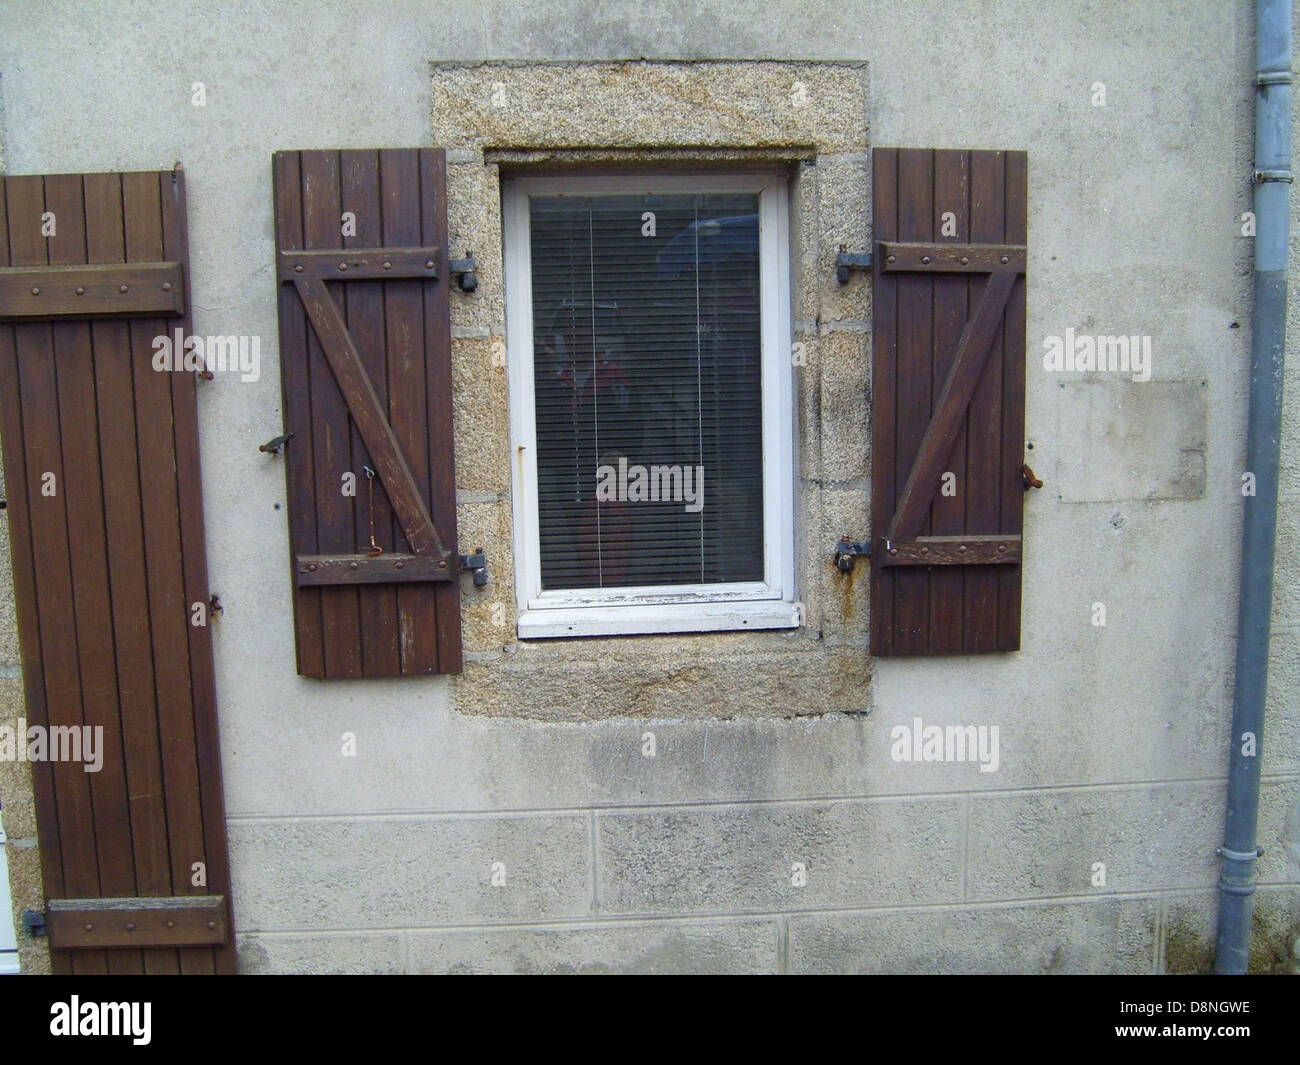 Wooden old fashioned window. - Stock Image